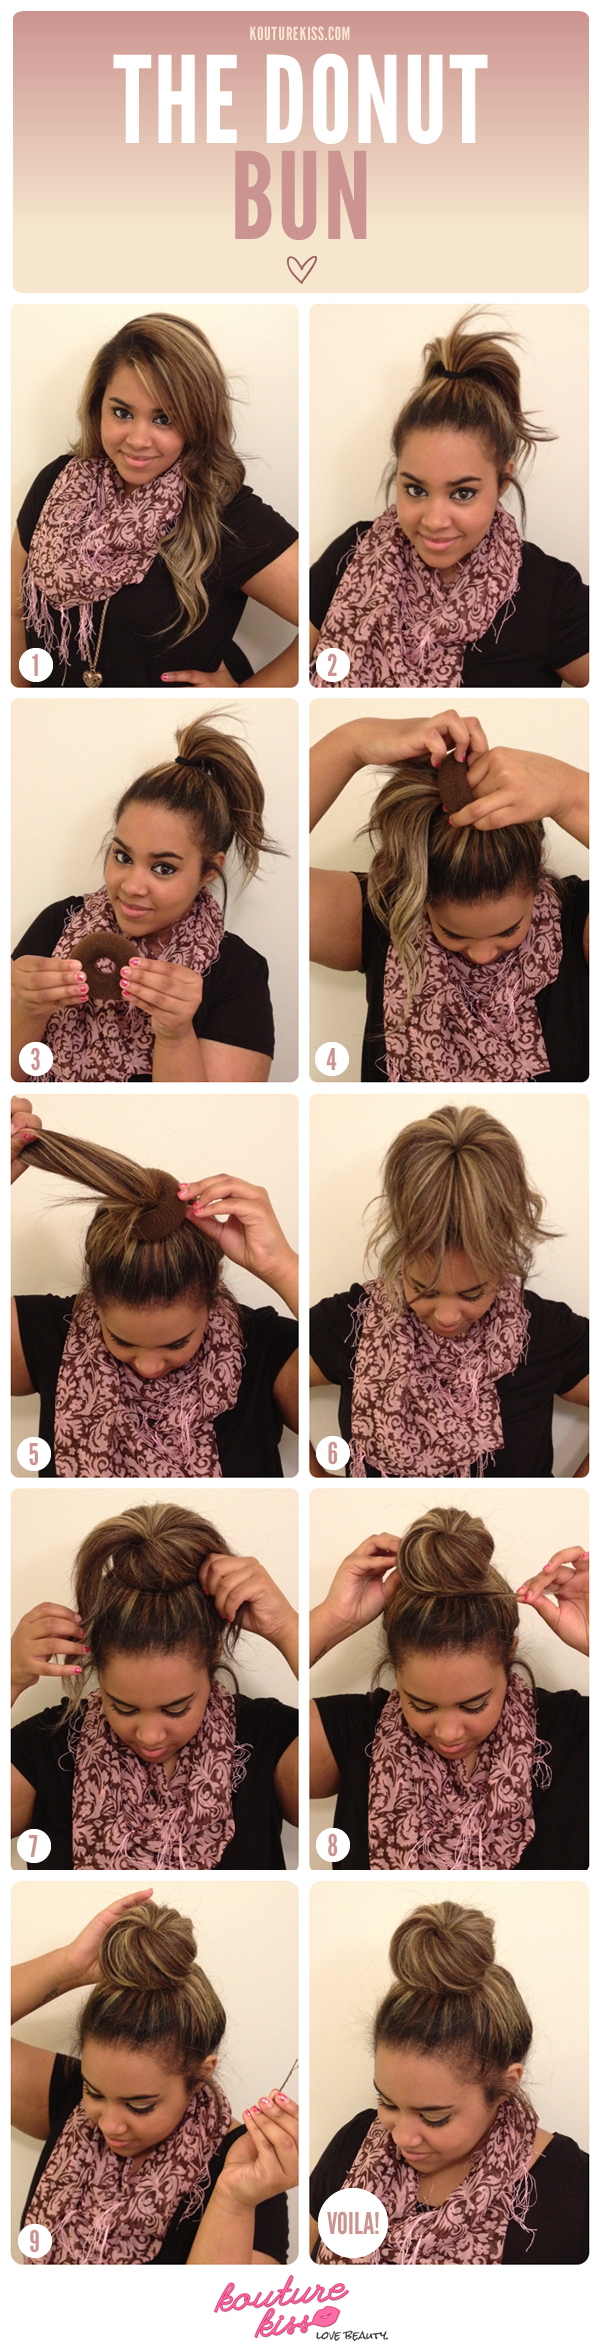 25 Tips And Tricks To Get The Perfect Bun Hair Styles Hair Donut Long Hair Styles